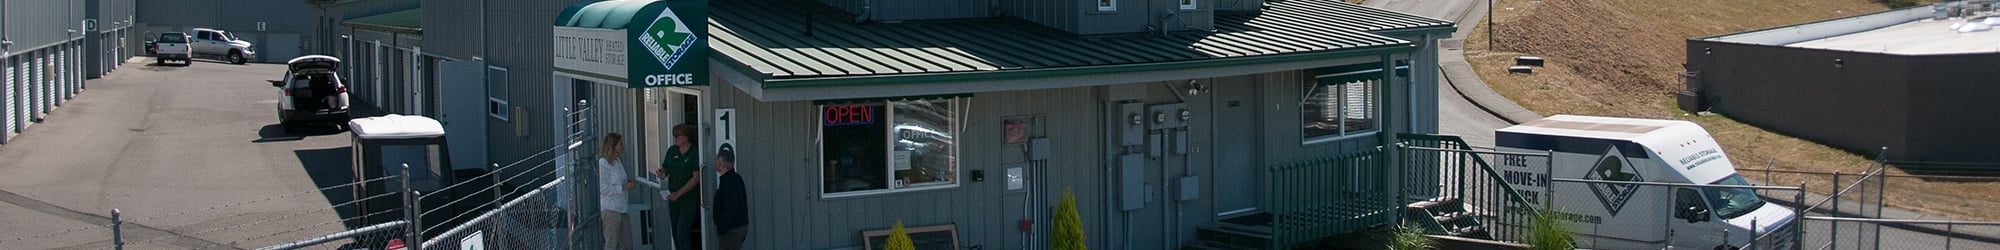 Photos of our self storage facility in Poulsbo WA